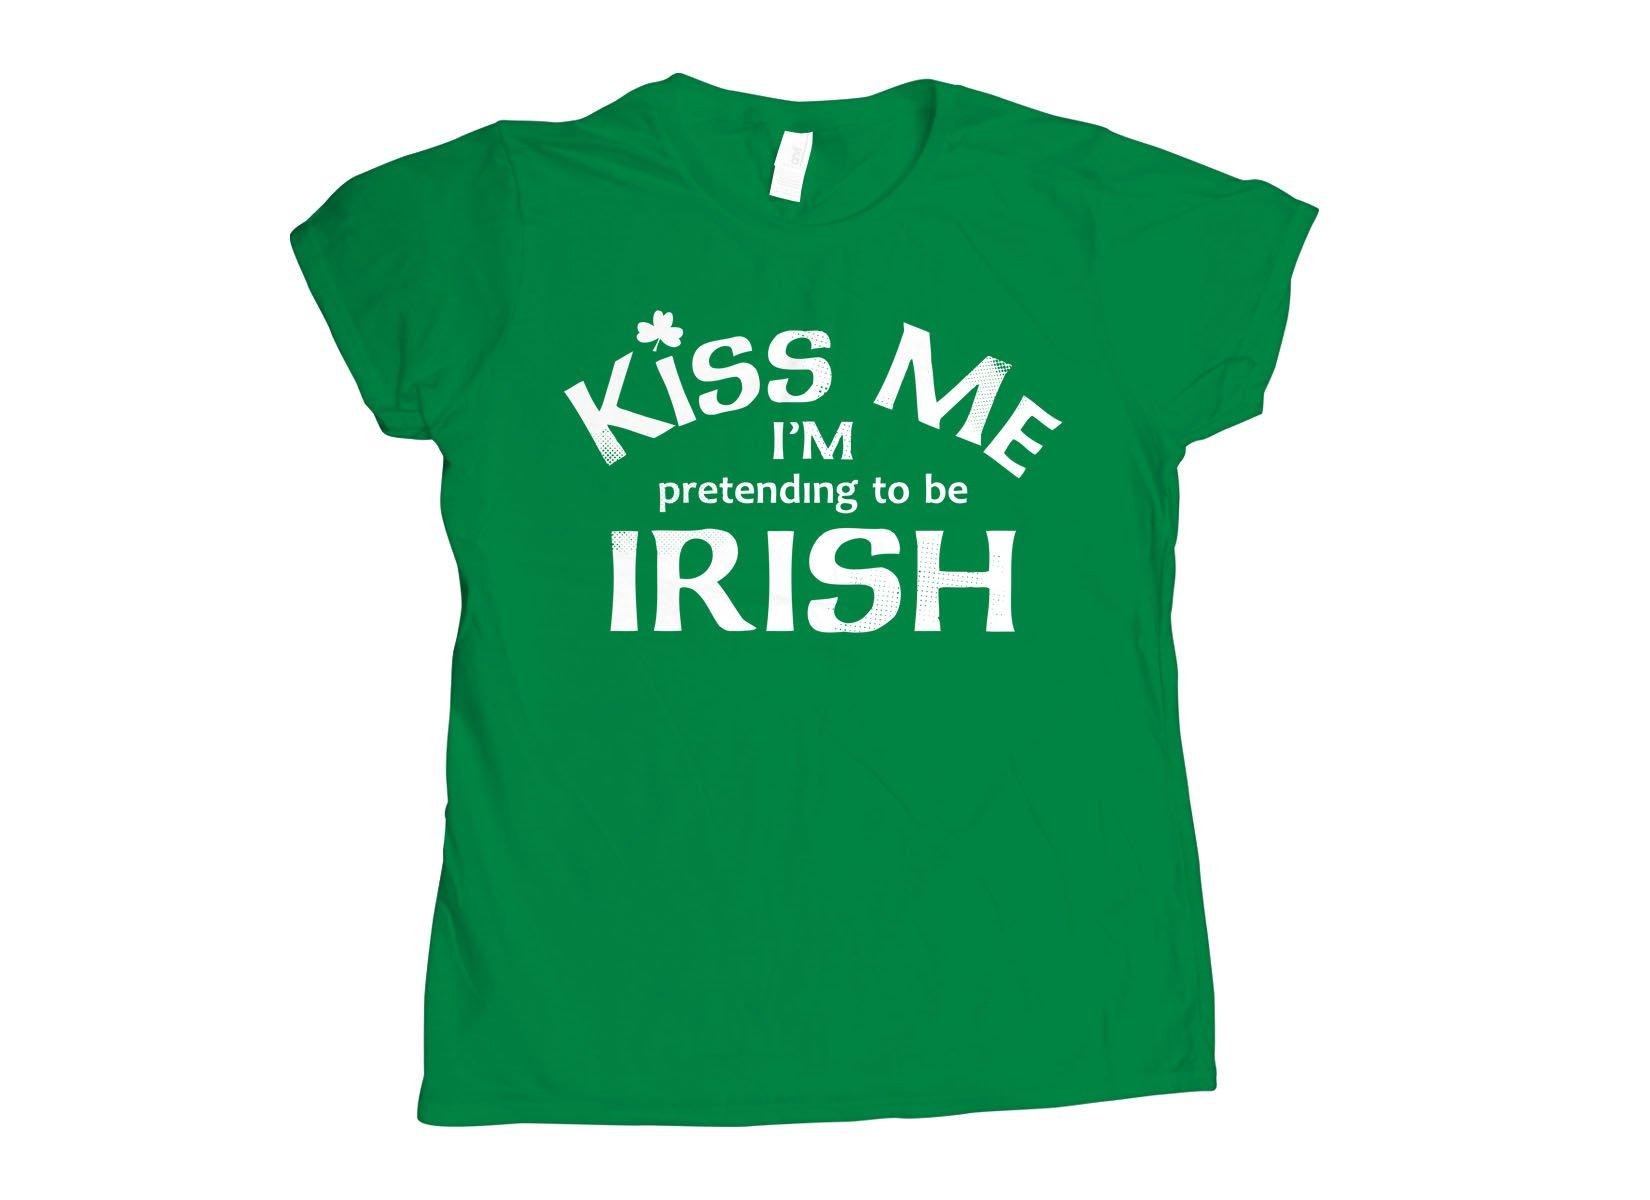 Kiss Me I'm Pretending To Be Irish on Womens T-Shirt